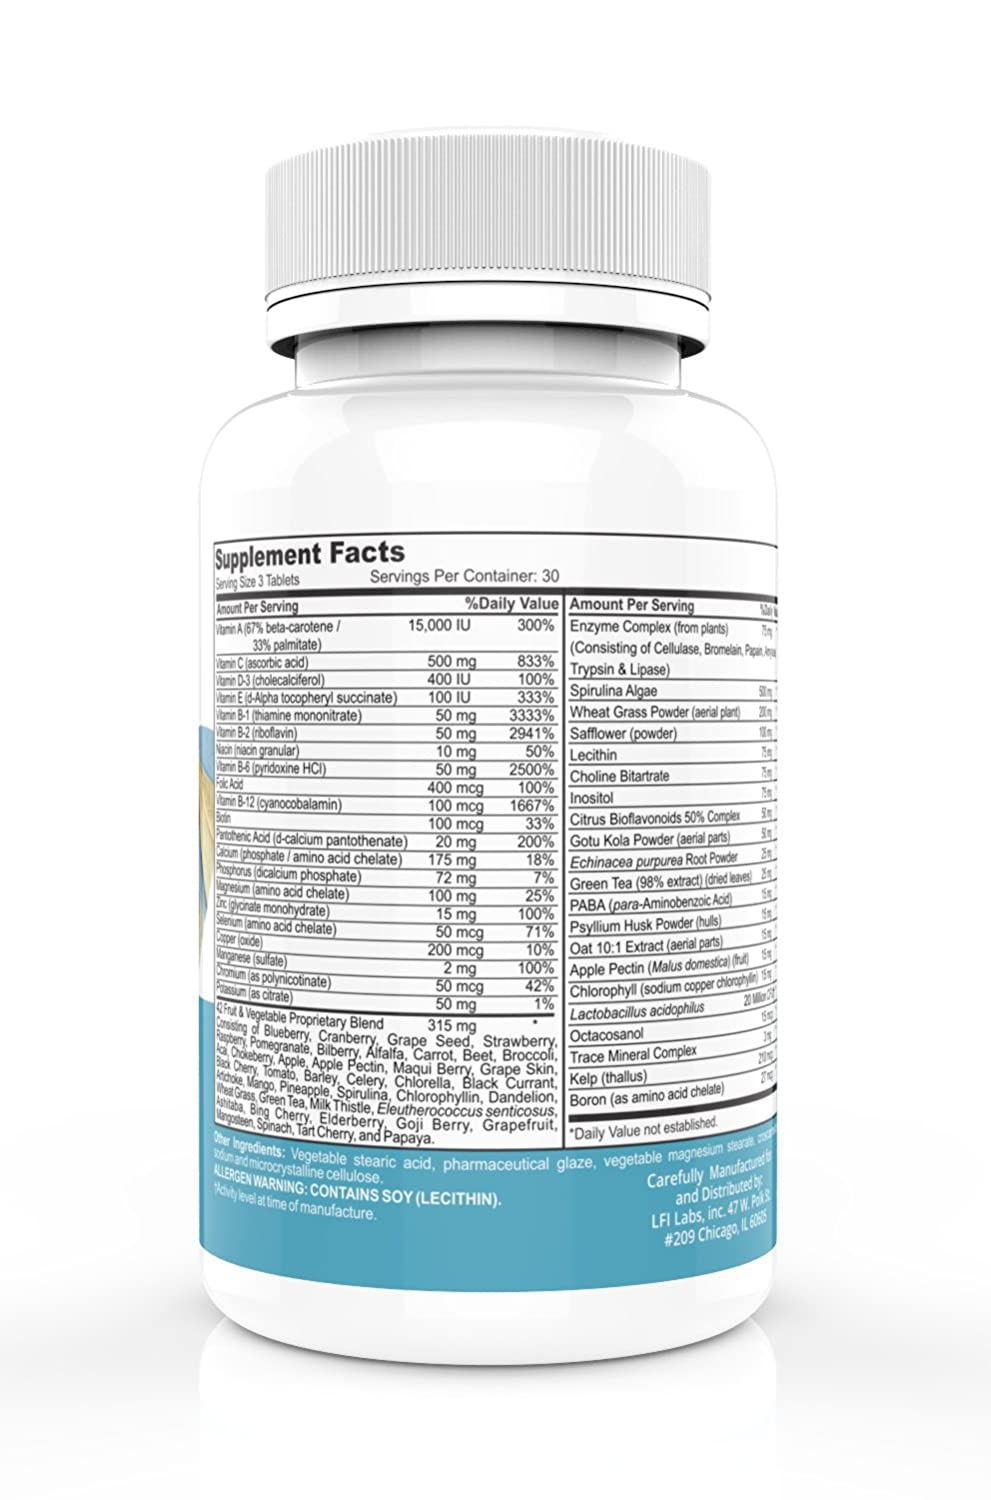 Elements Complete Best Multivitamin Superfood — The Most Complete Vitamin-Mineral-Antioxidant-Probiotic-Enzyme-Superfood Blend. The Ultimate All-in-One.